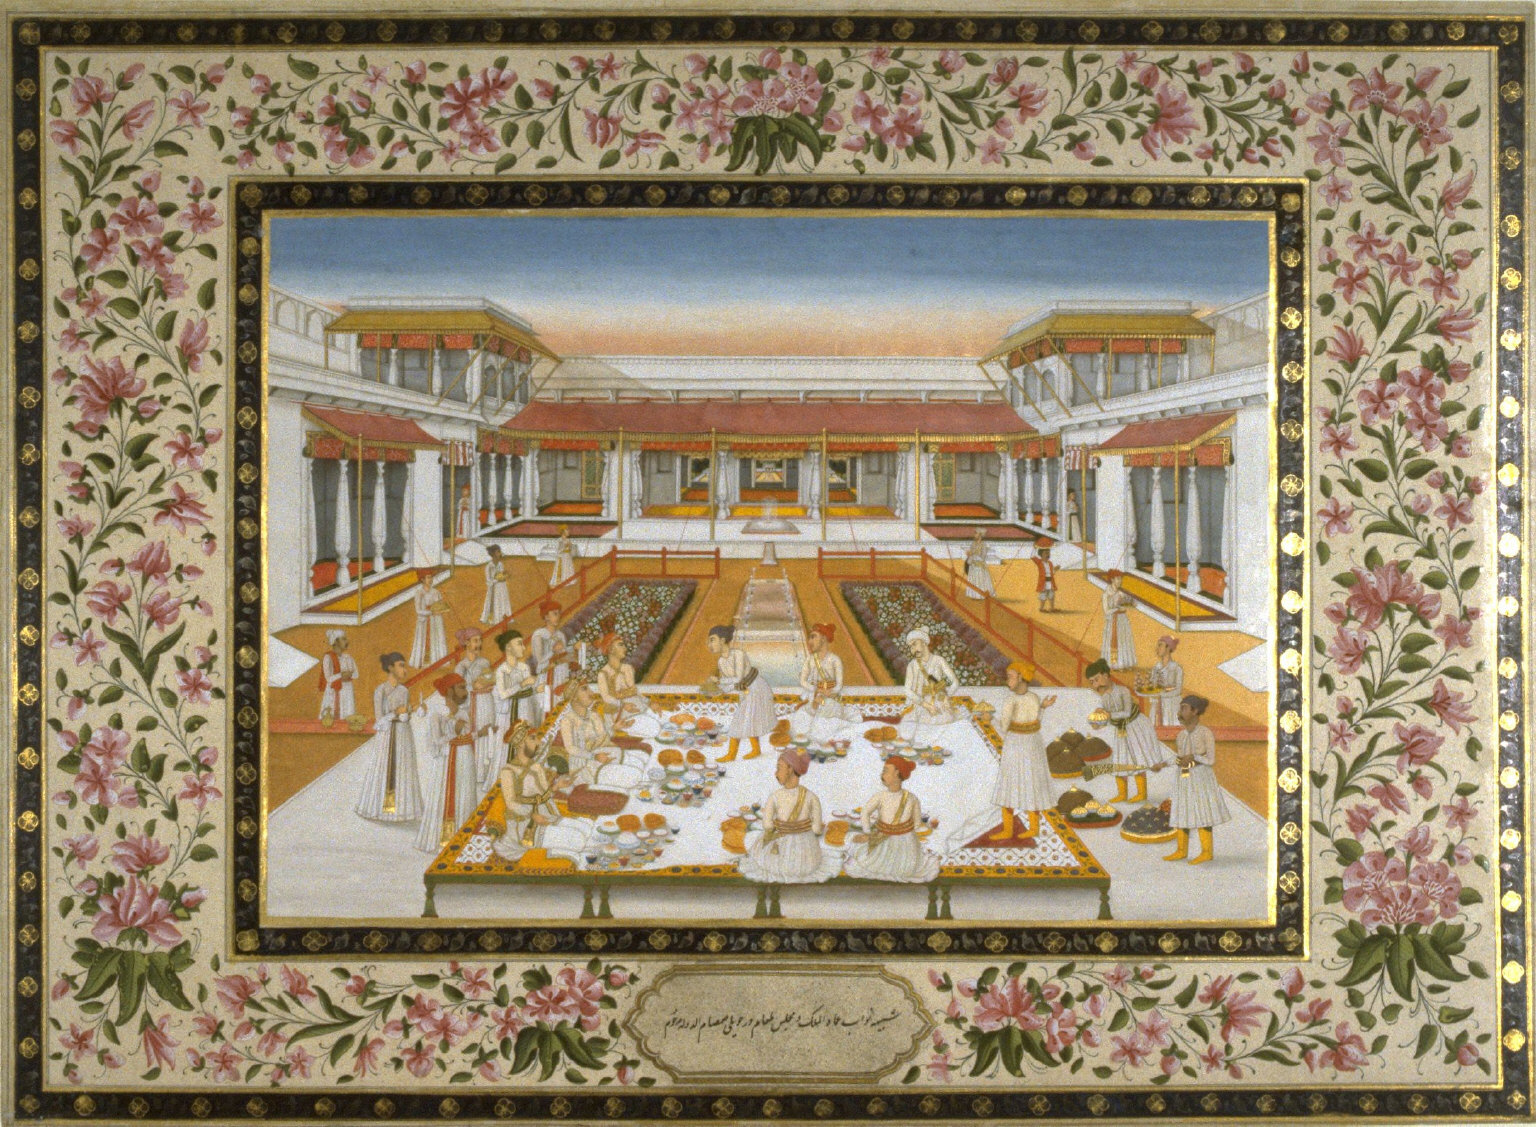 Nawab Emadol Molk at the Banquet in the House of the Deceased Samsamol-doleh, a page from the Lady Coote Album